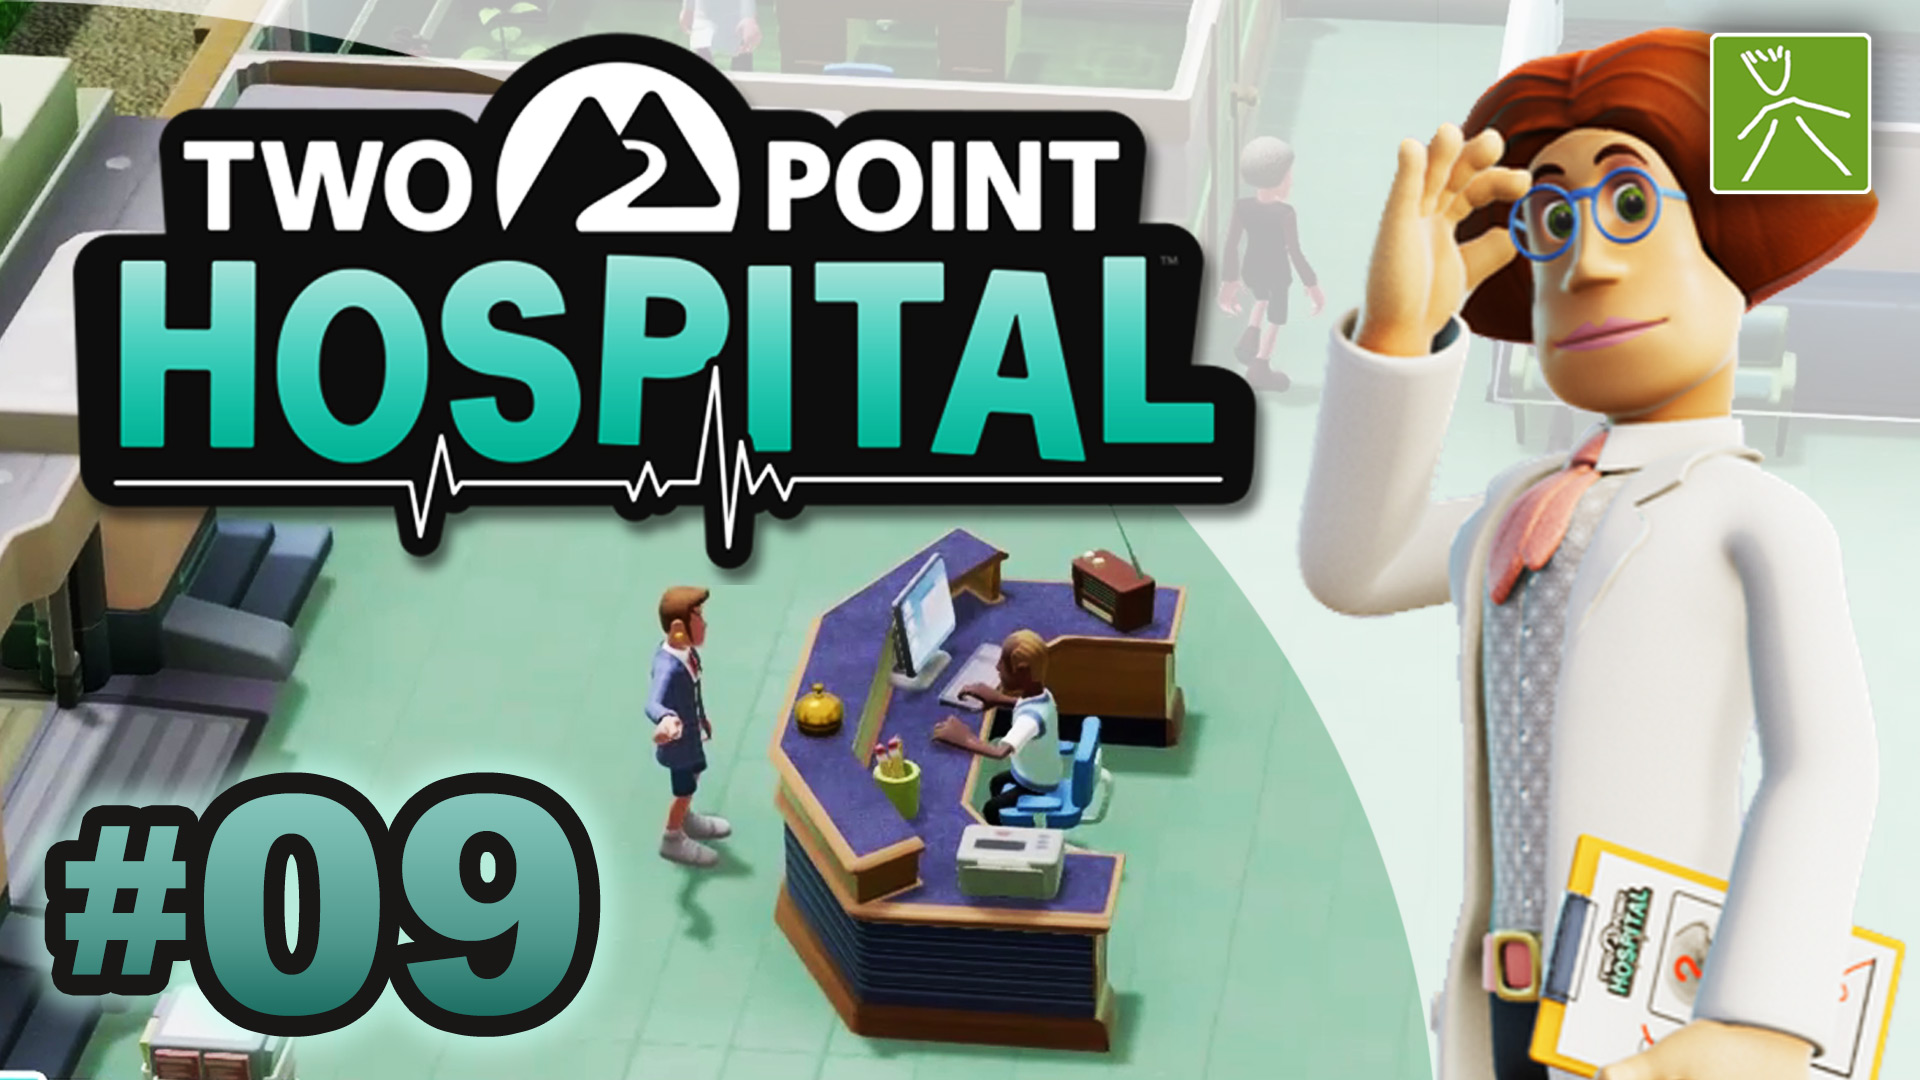 Two Point Hospital ep09 |